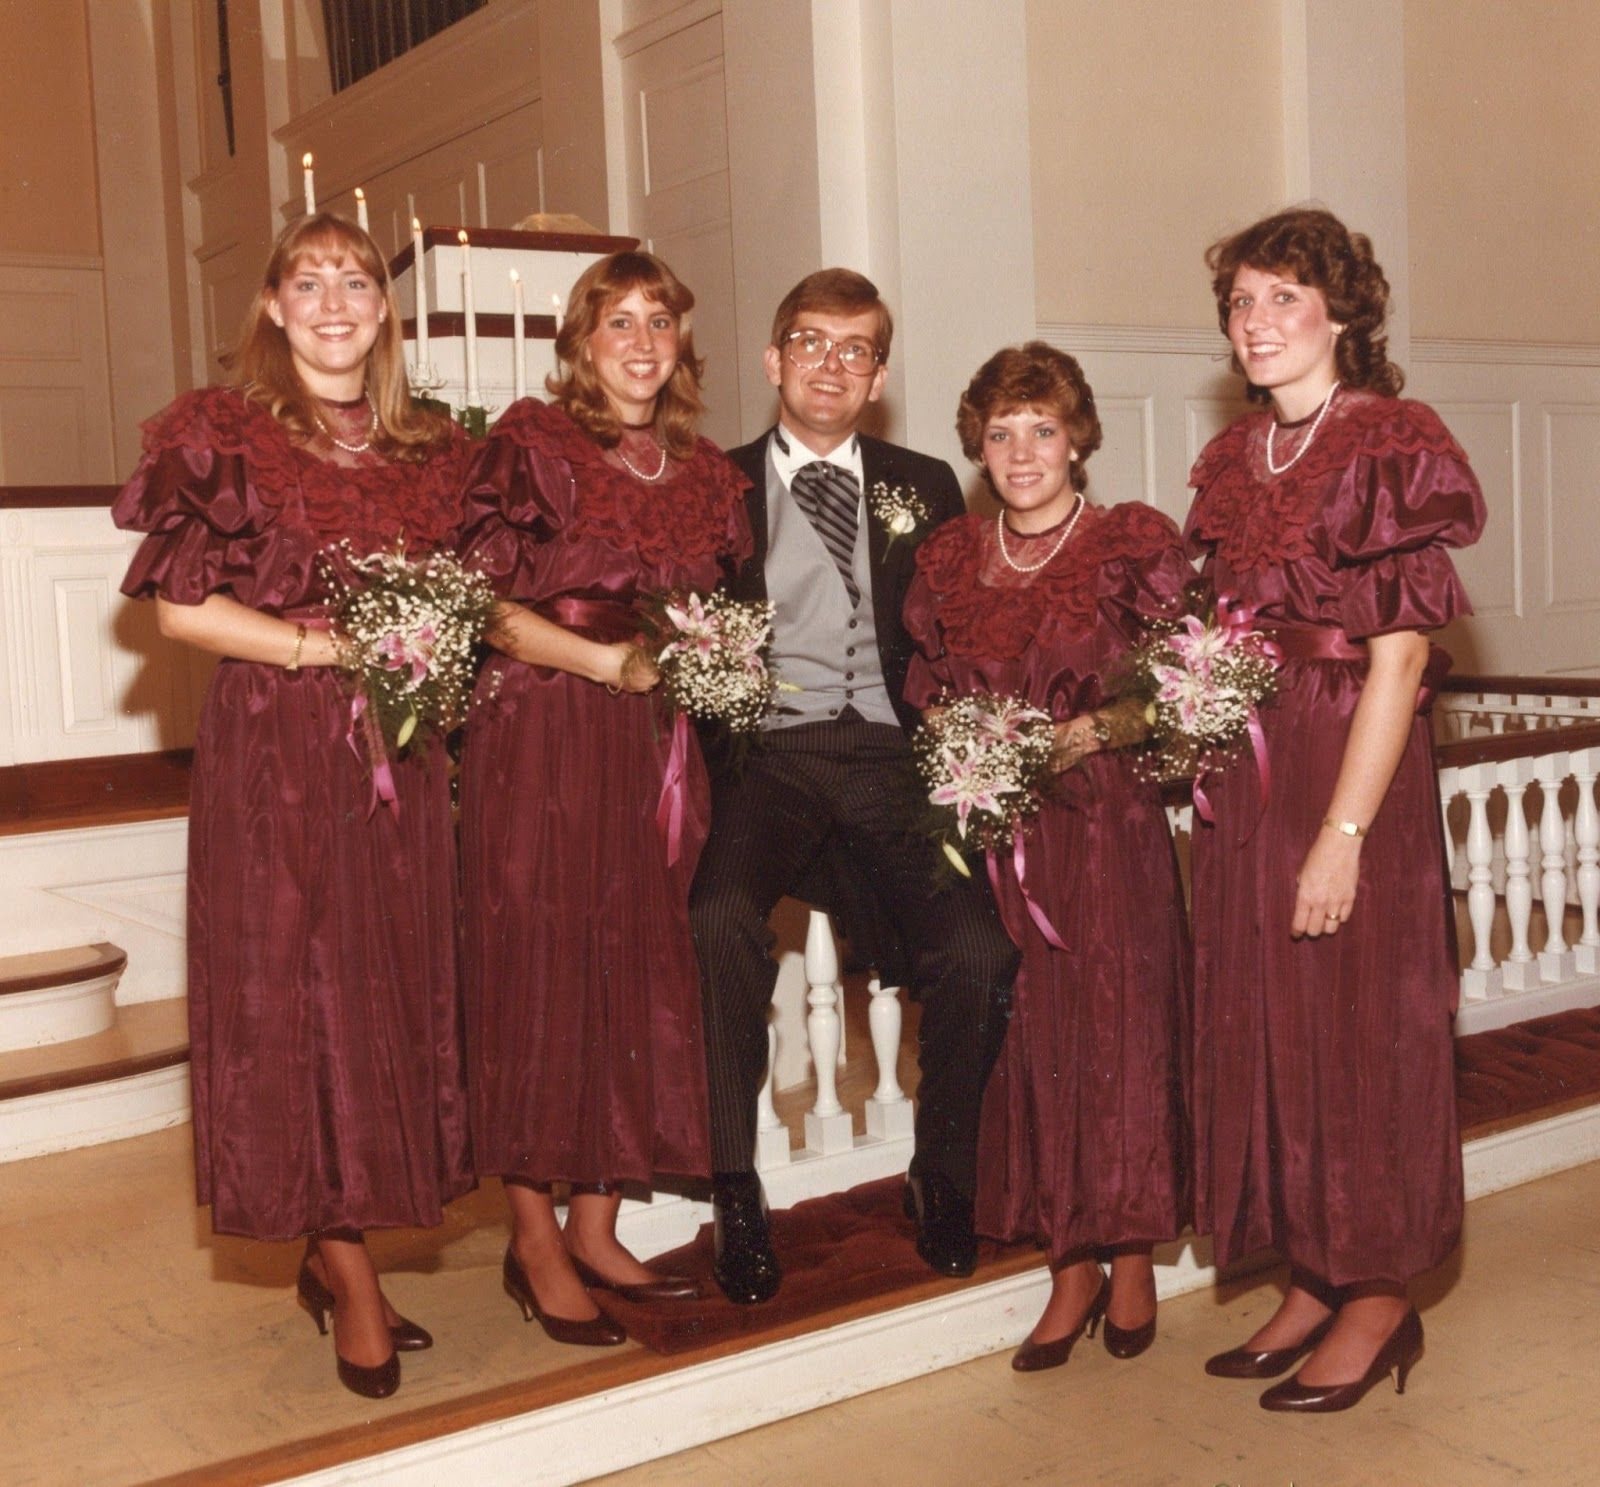 1980 S Bridesmaids These Are The Least Offensive 80s Bridesmaids Dresses Vintage Bridesmaid Dresses Bridesmaid Bridesmaid Dresss